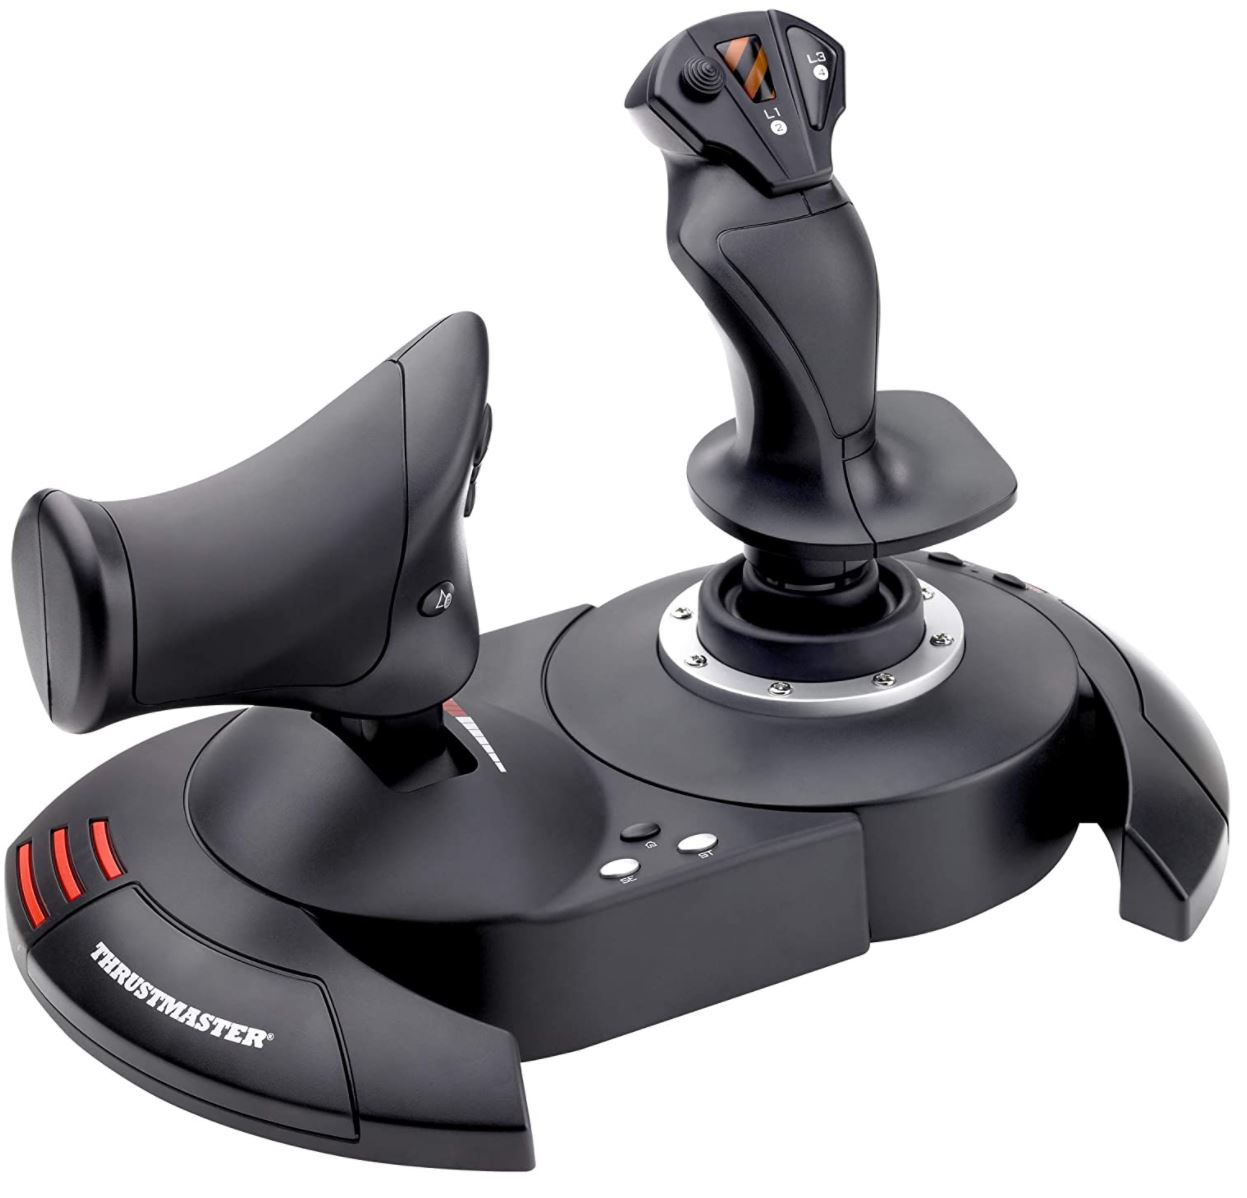 Thrustmaster T.Flight Hotas X Review - Older But Still Awesome! 4